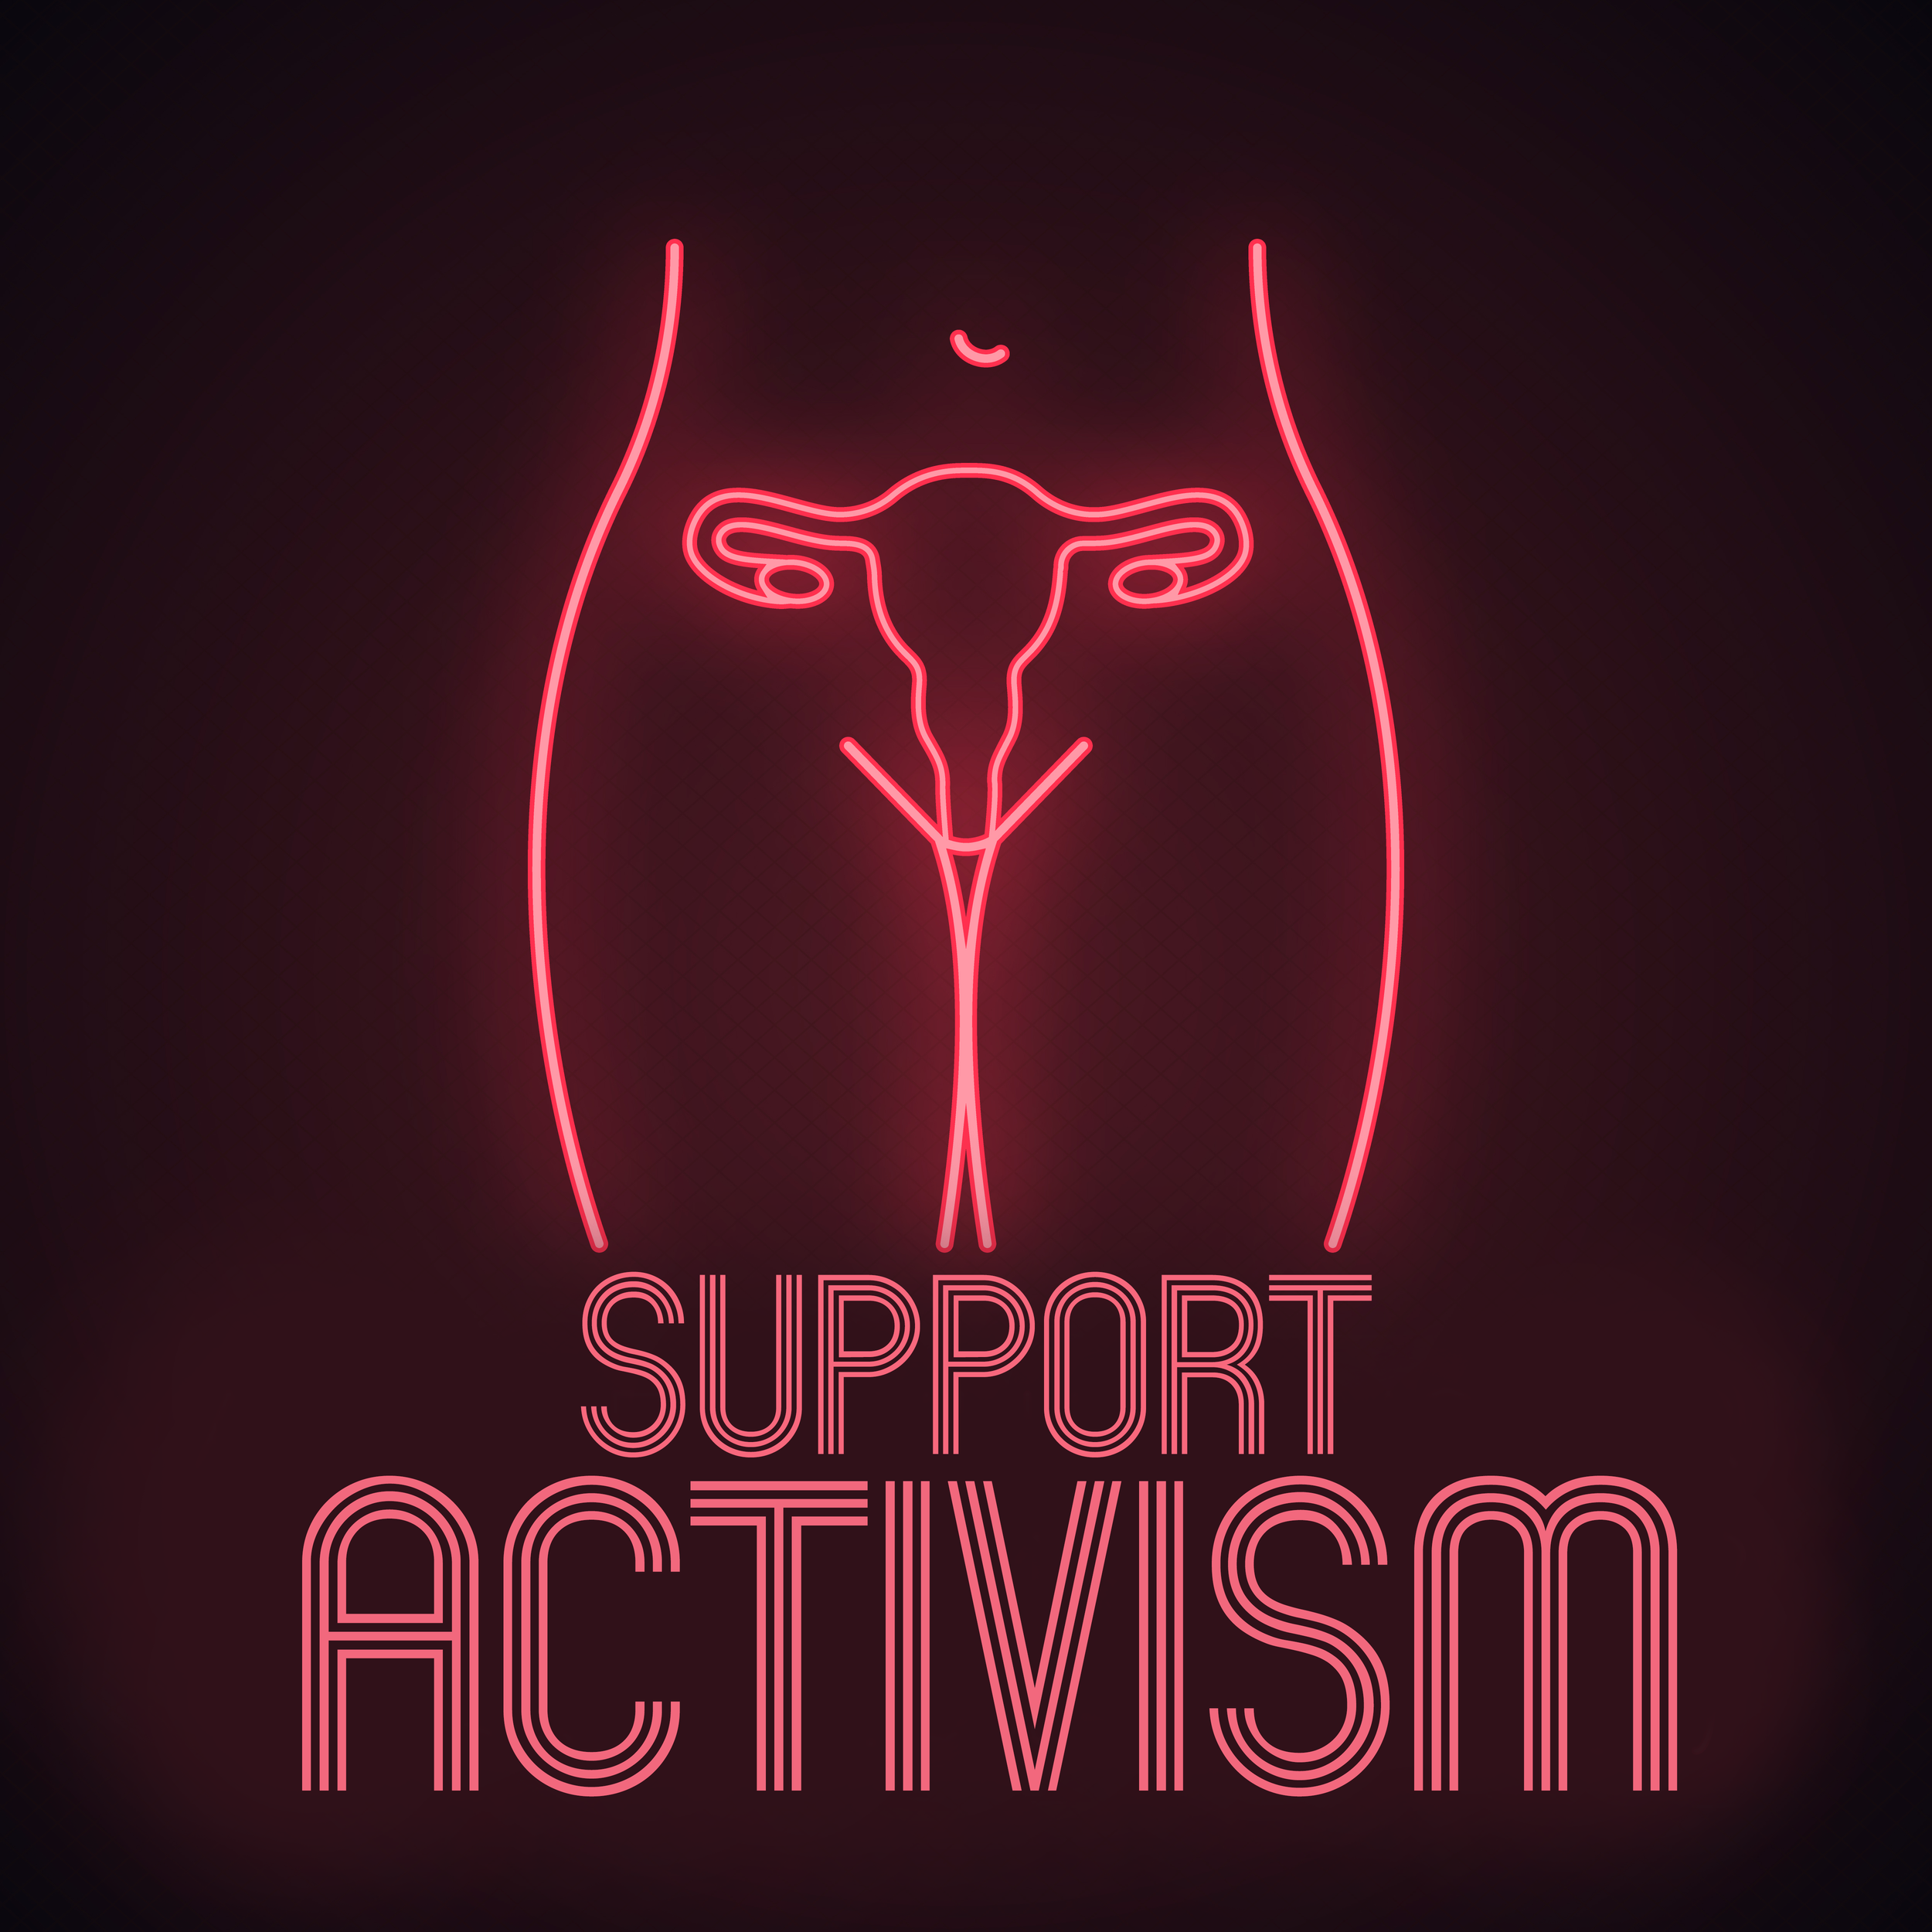 Activism - We'll use this space as place to post resources and links that address Women's Rights + Reproductive Rights through creativity. Submissions welcome!